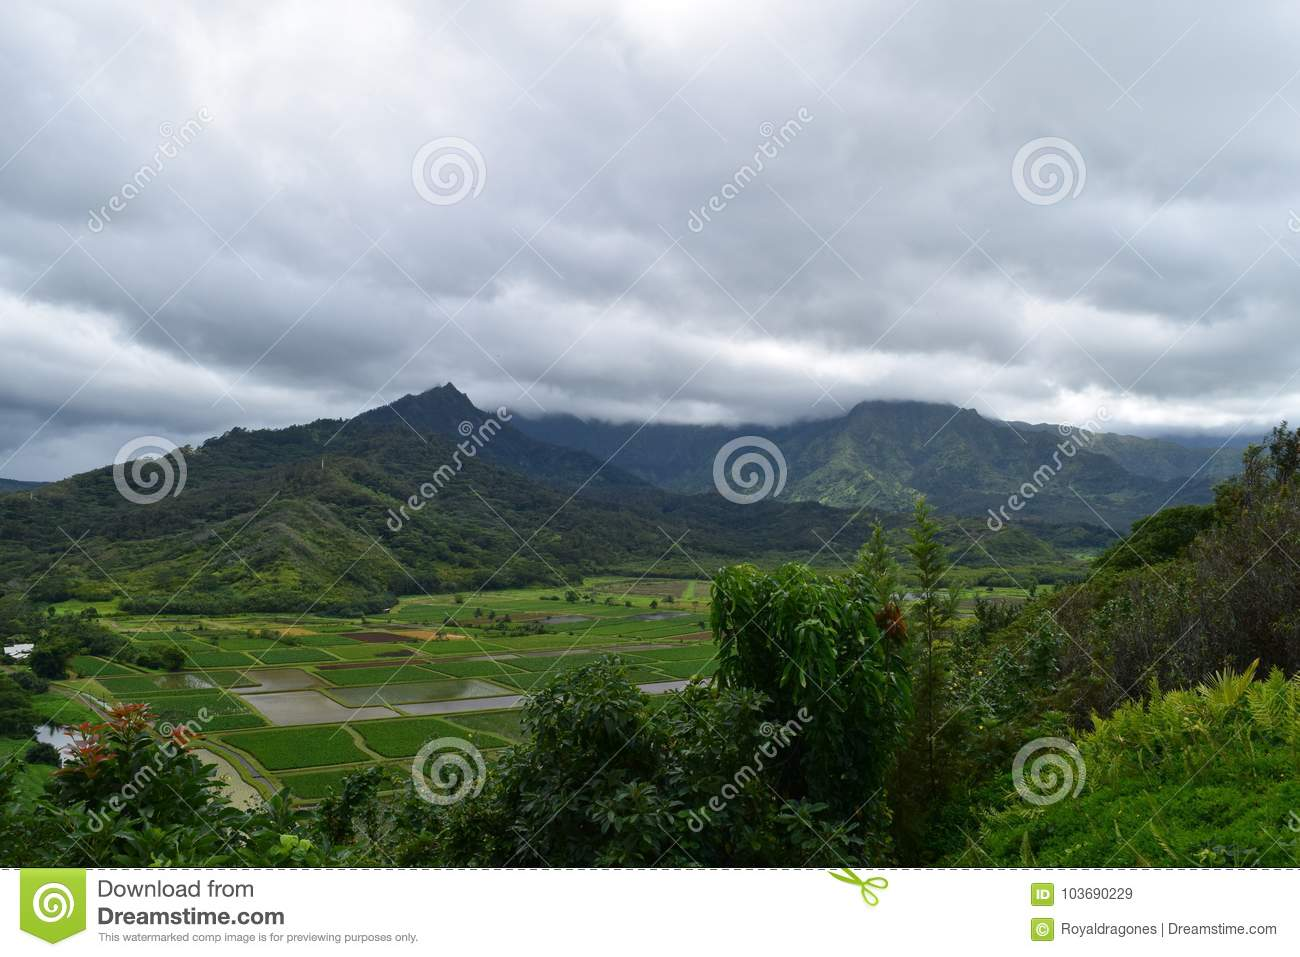 Hanalei Valley Taro fields in Kauai Hawaii